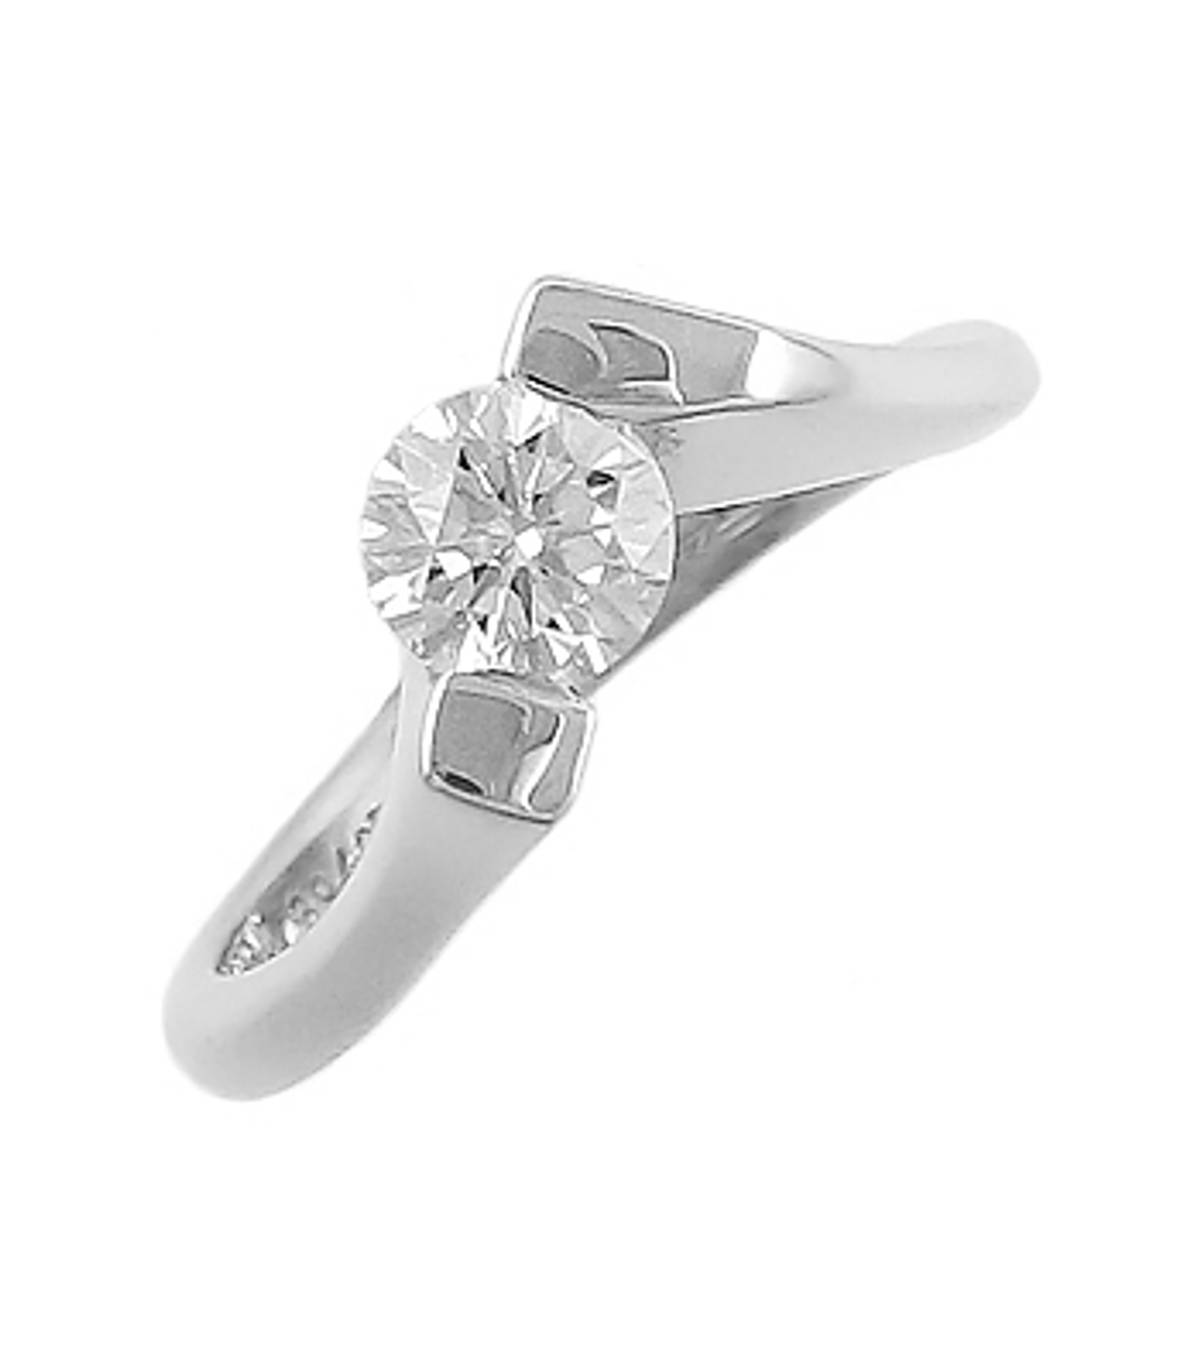 DR74323Diamond solitaire ring in 18 ct white goldPictured item: 0.62cts diamond set in 18k white goldimage 69425